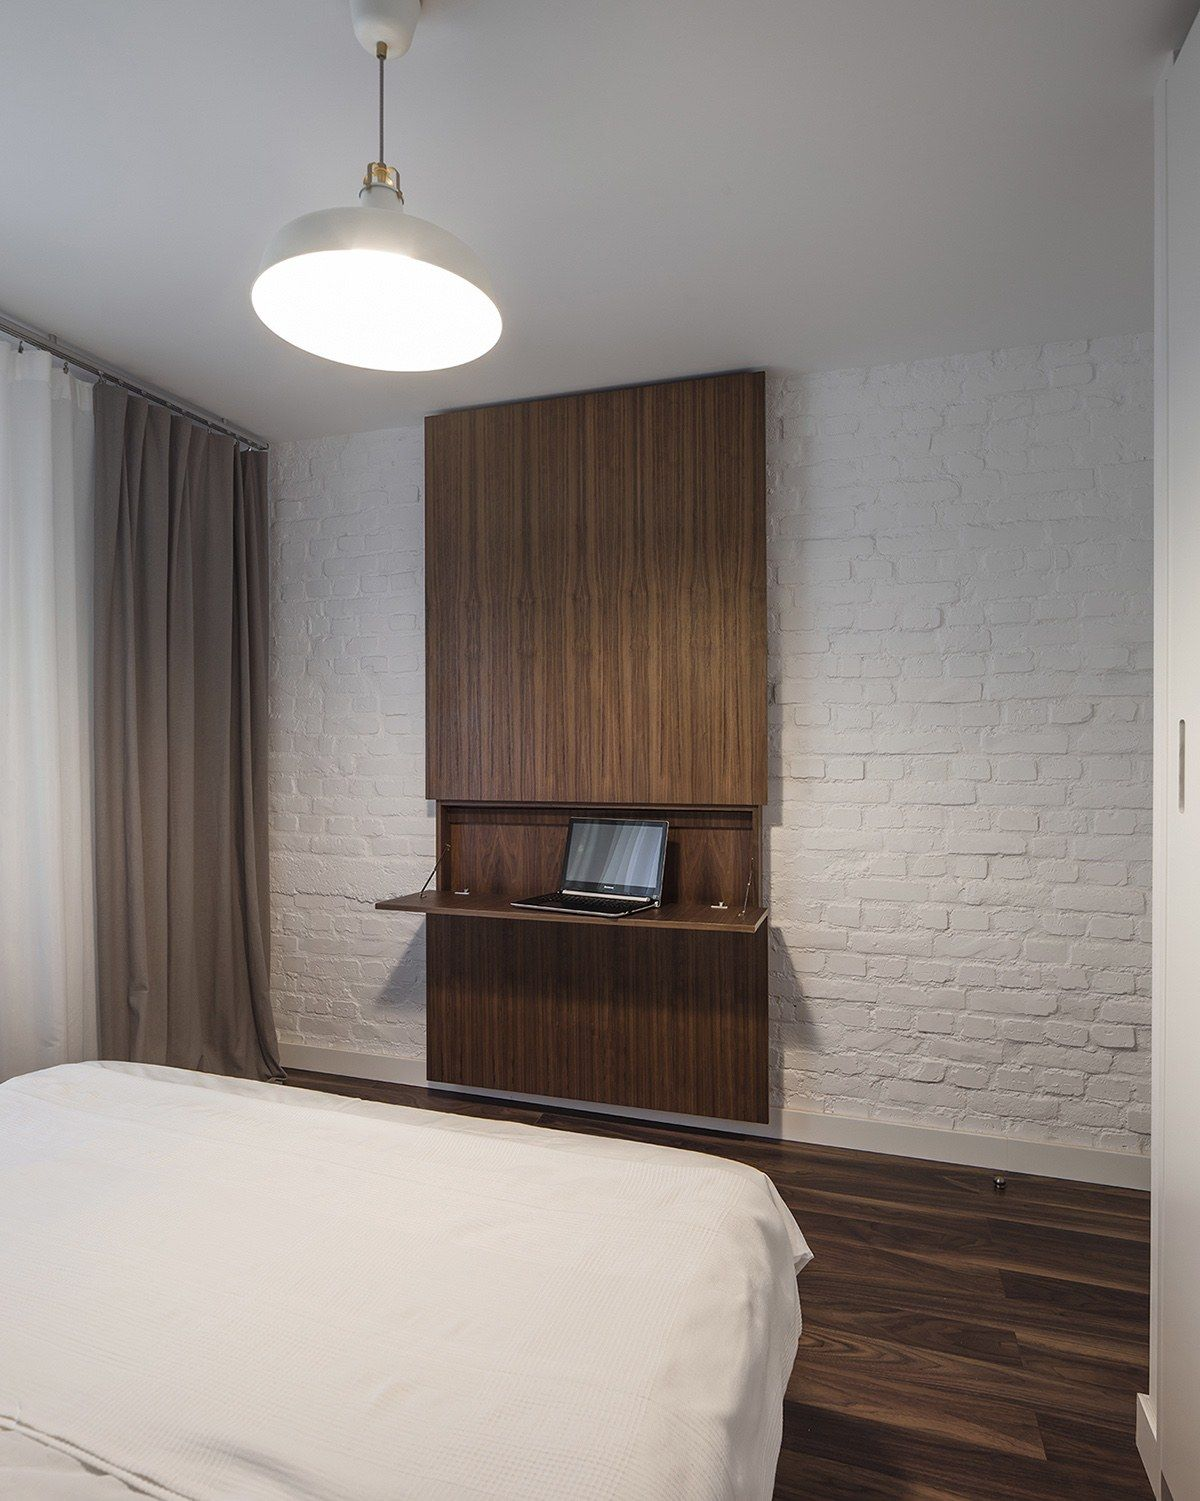 Superb Light And Charming Decor In A Compact 1 Bedroom Apartment